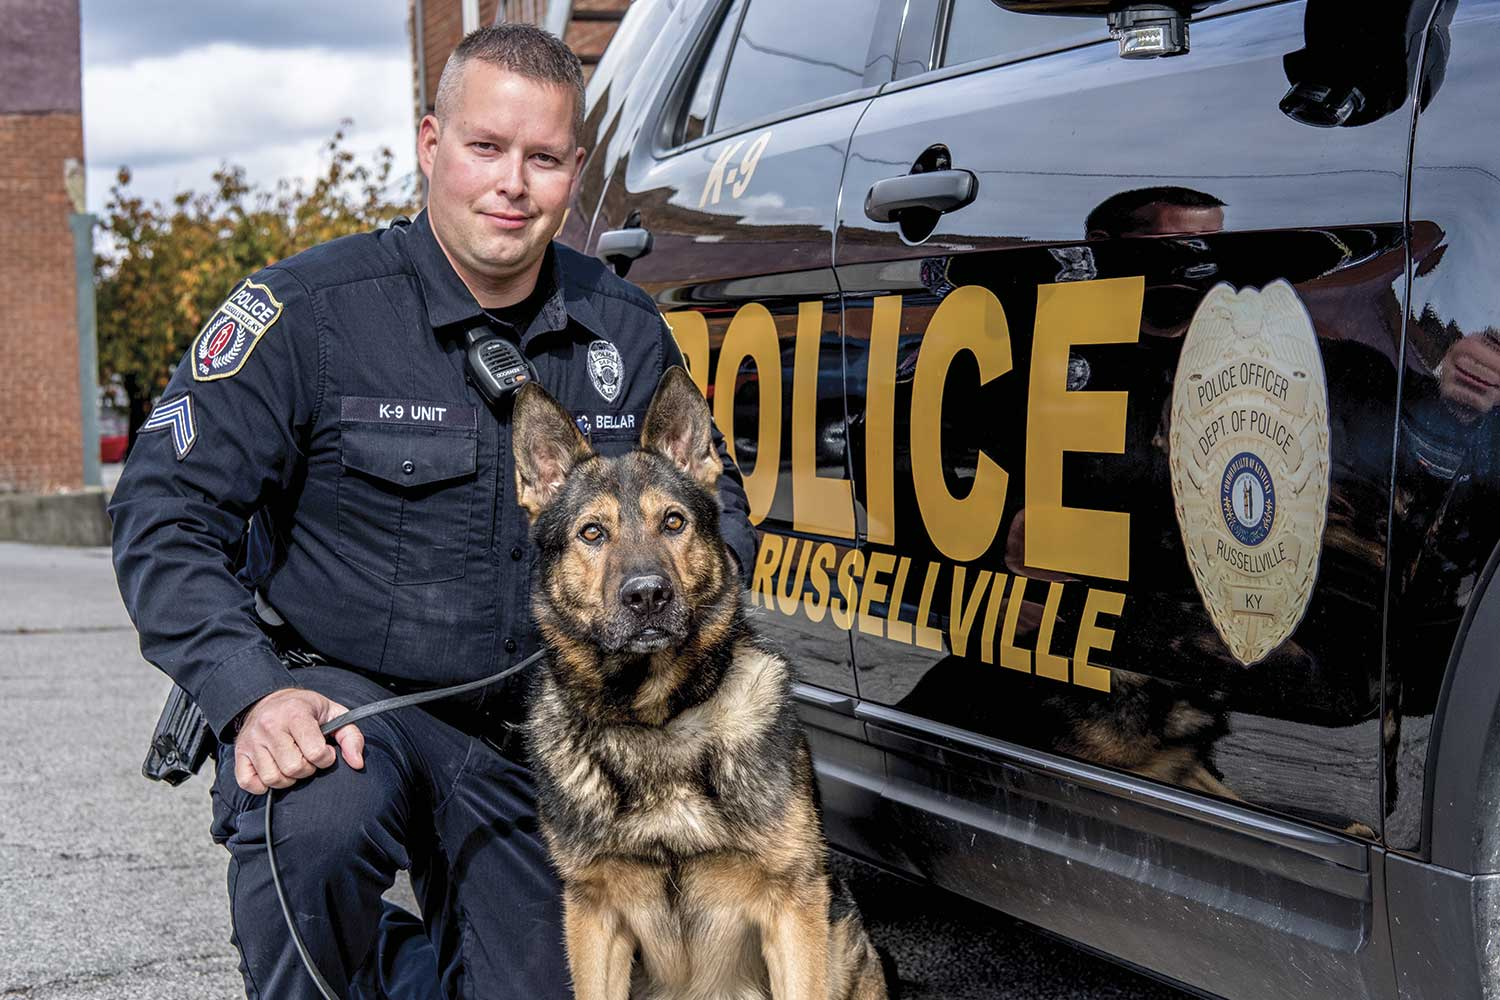 Officer Chris Bellar and his partner Jax work diligently to battle drug problems in Russellville. Police chief Victor Shifflett says many of the mental health-related calls can be traced to the drug problem. (Photo by Jim Robertson)